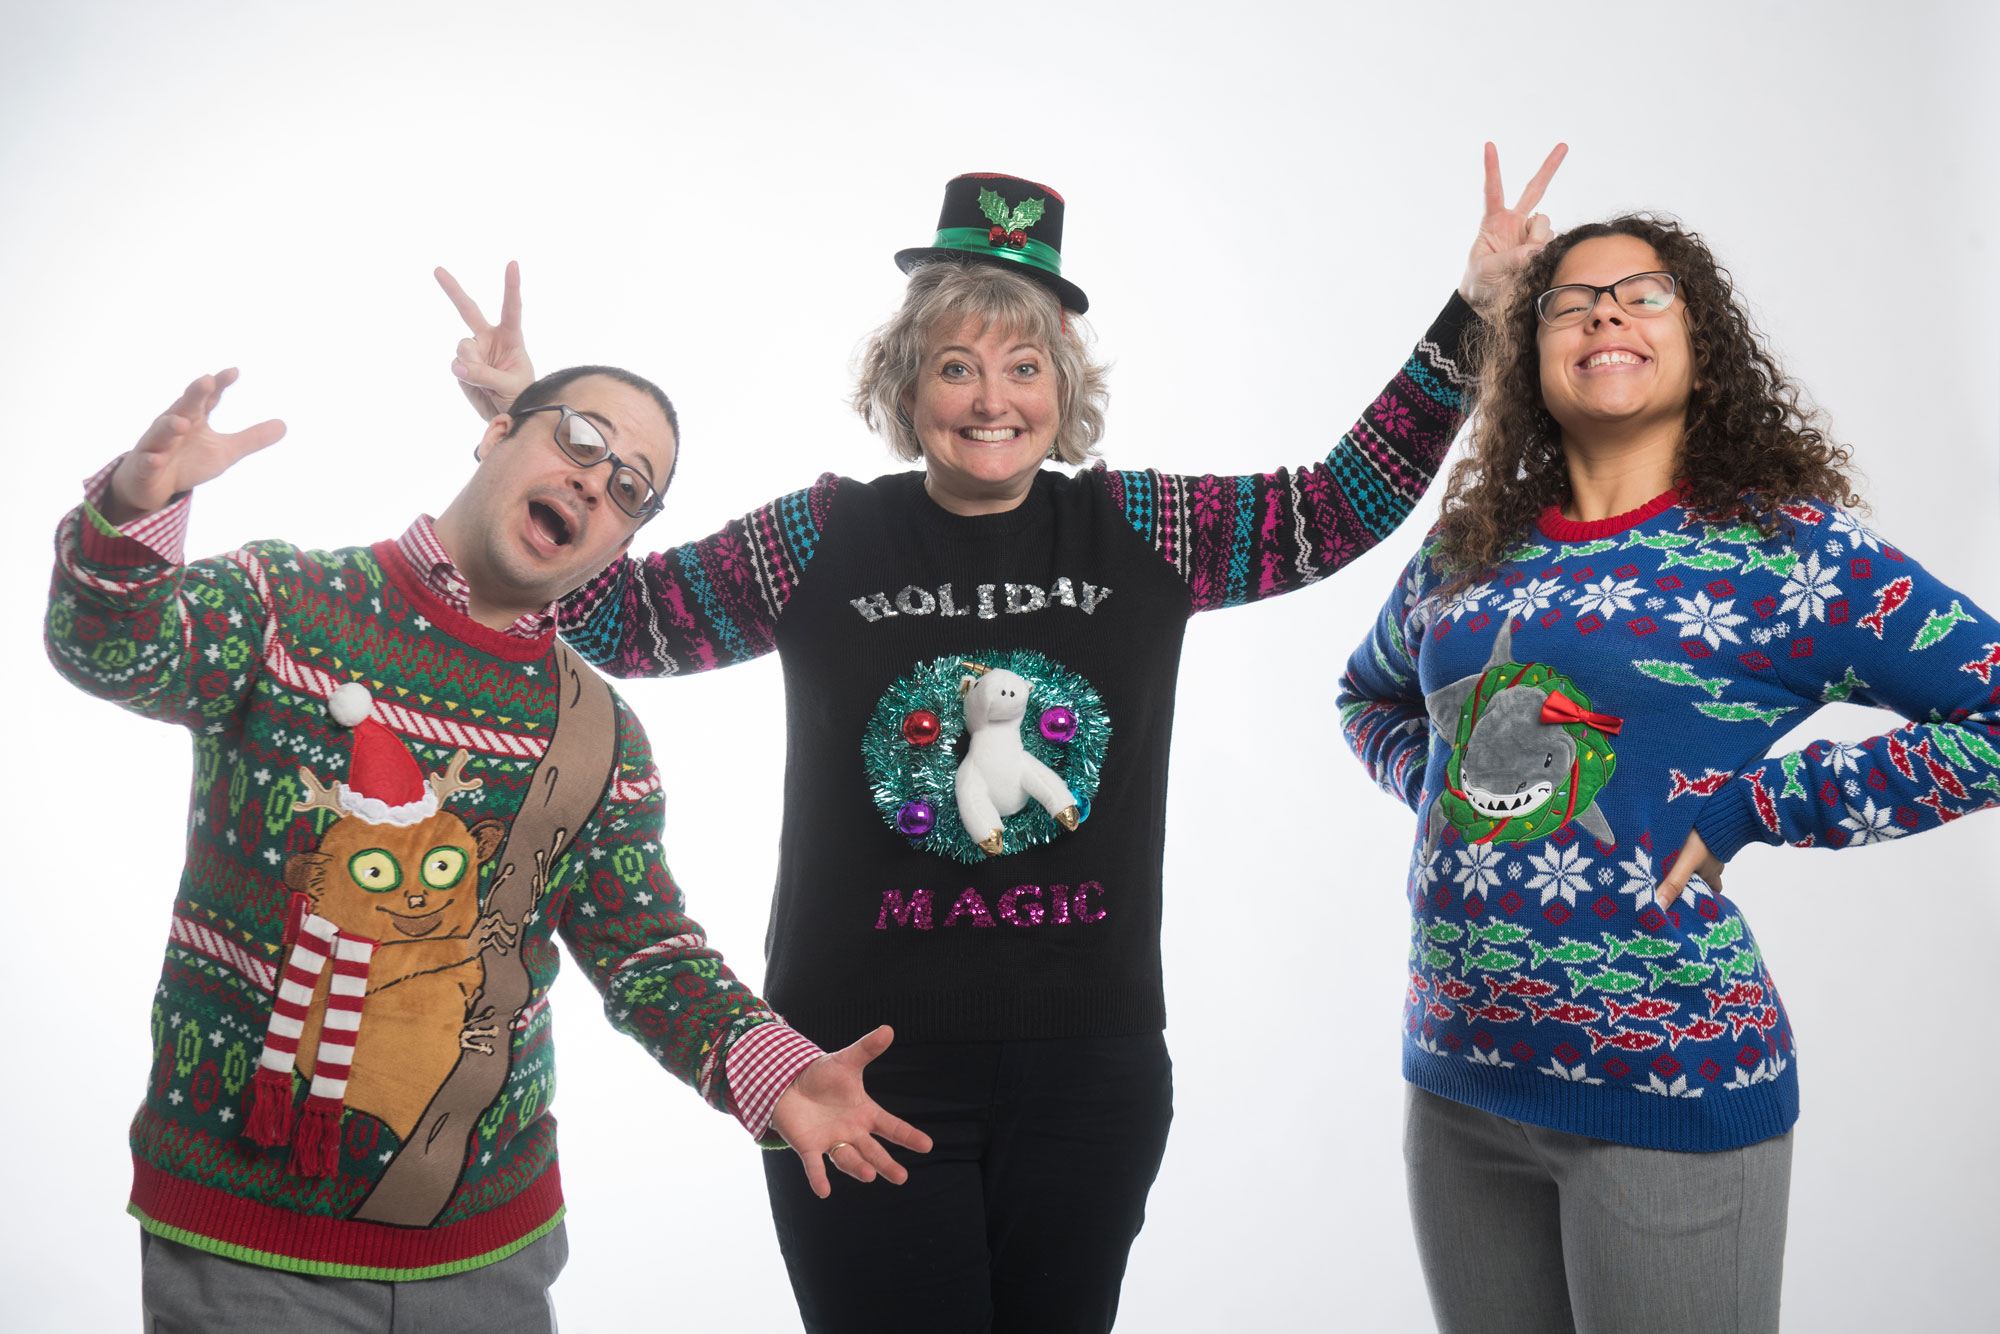 3 people pose in their ugly holiday sweaters